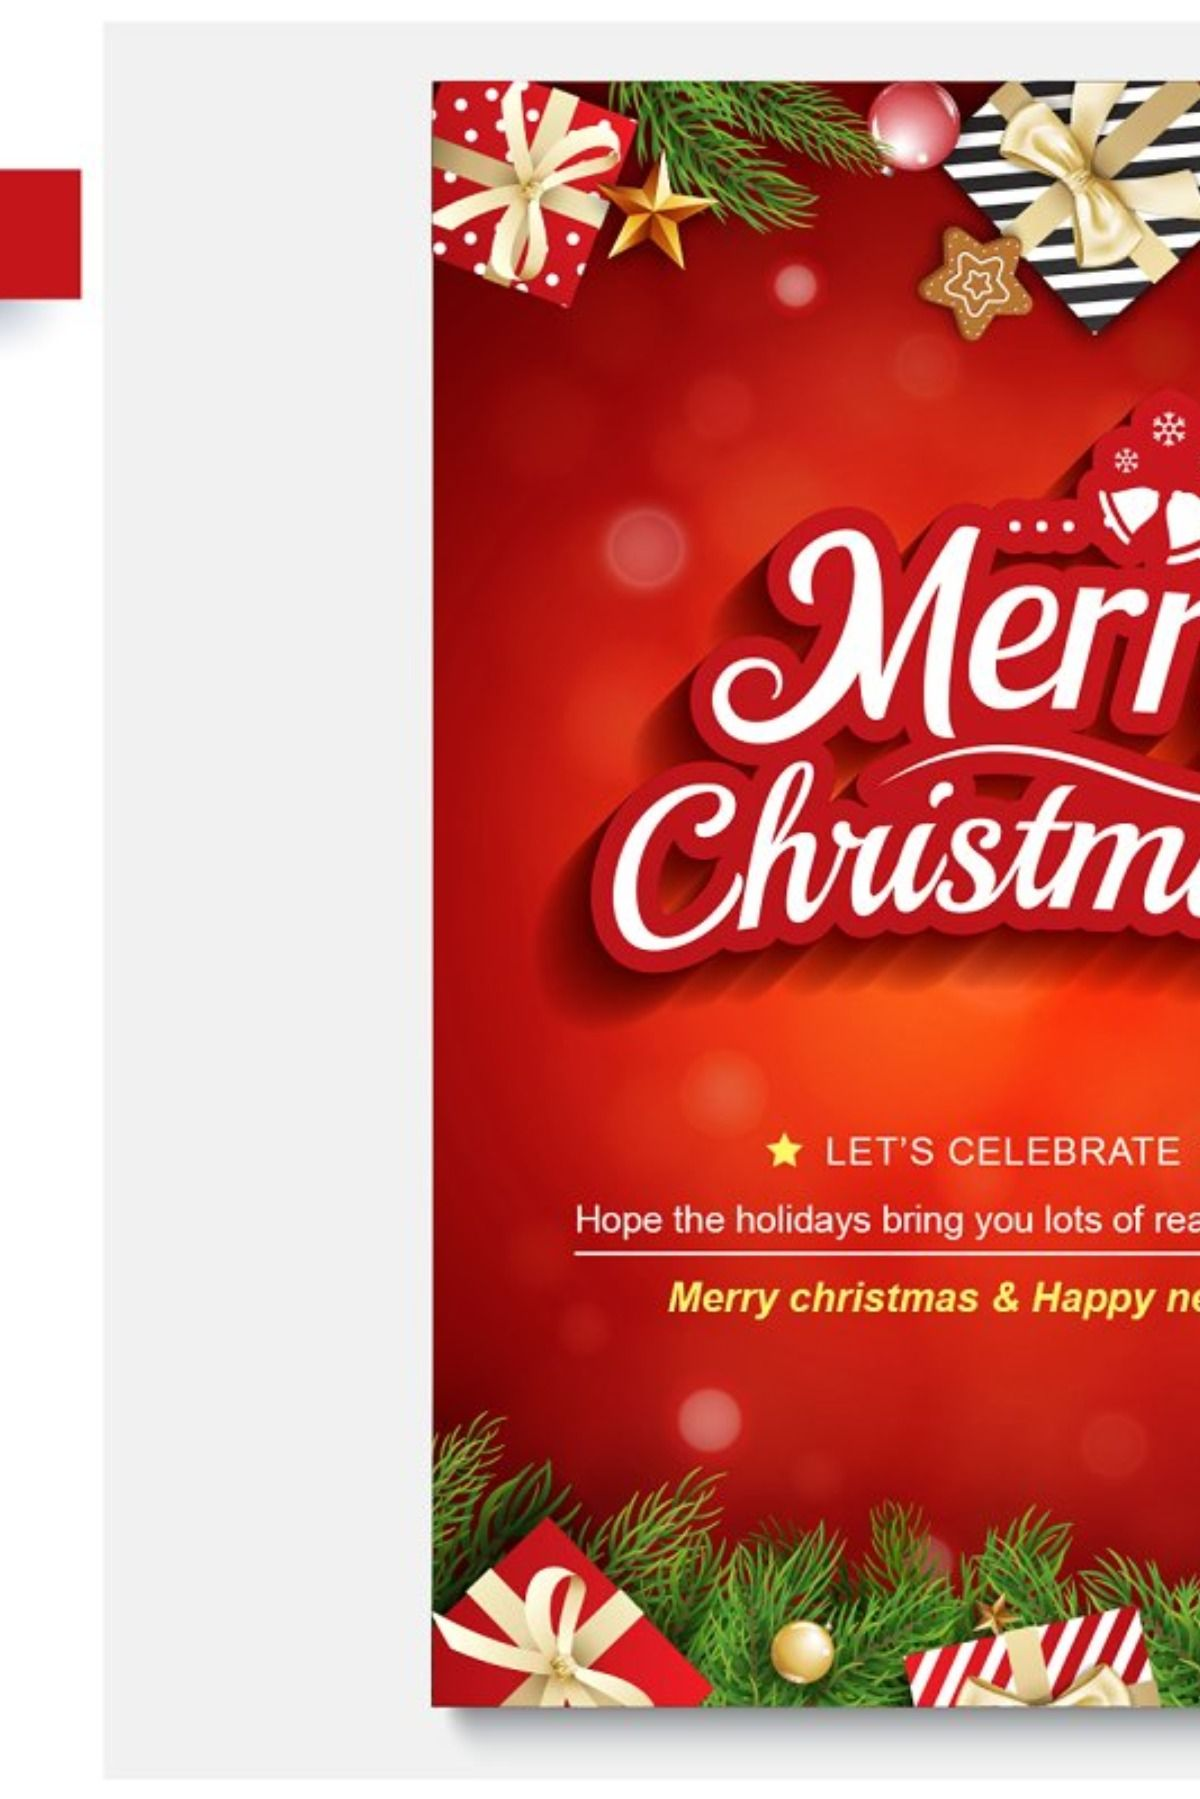 Merry Christmas Greeting Card Merry Christmas Card Greetings Merry Christmas Greetings Christmas Greeting Cards